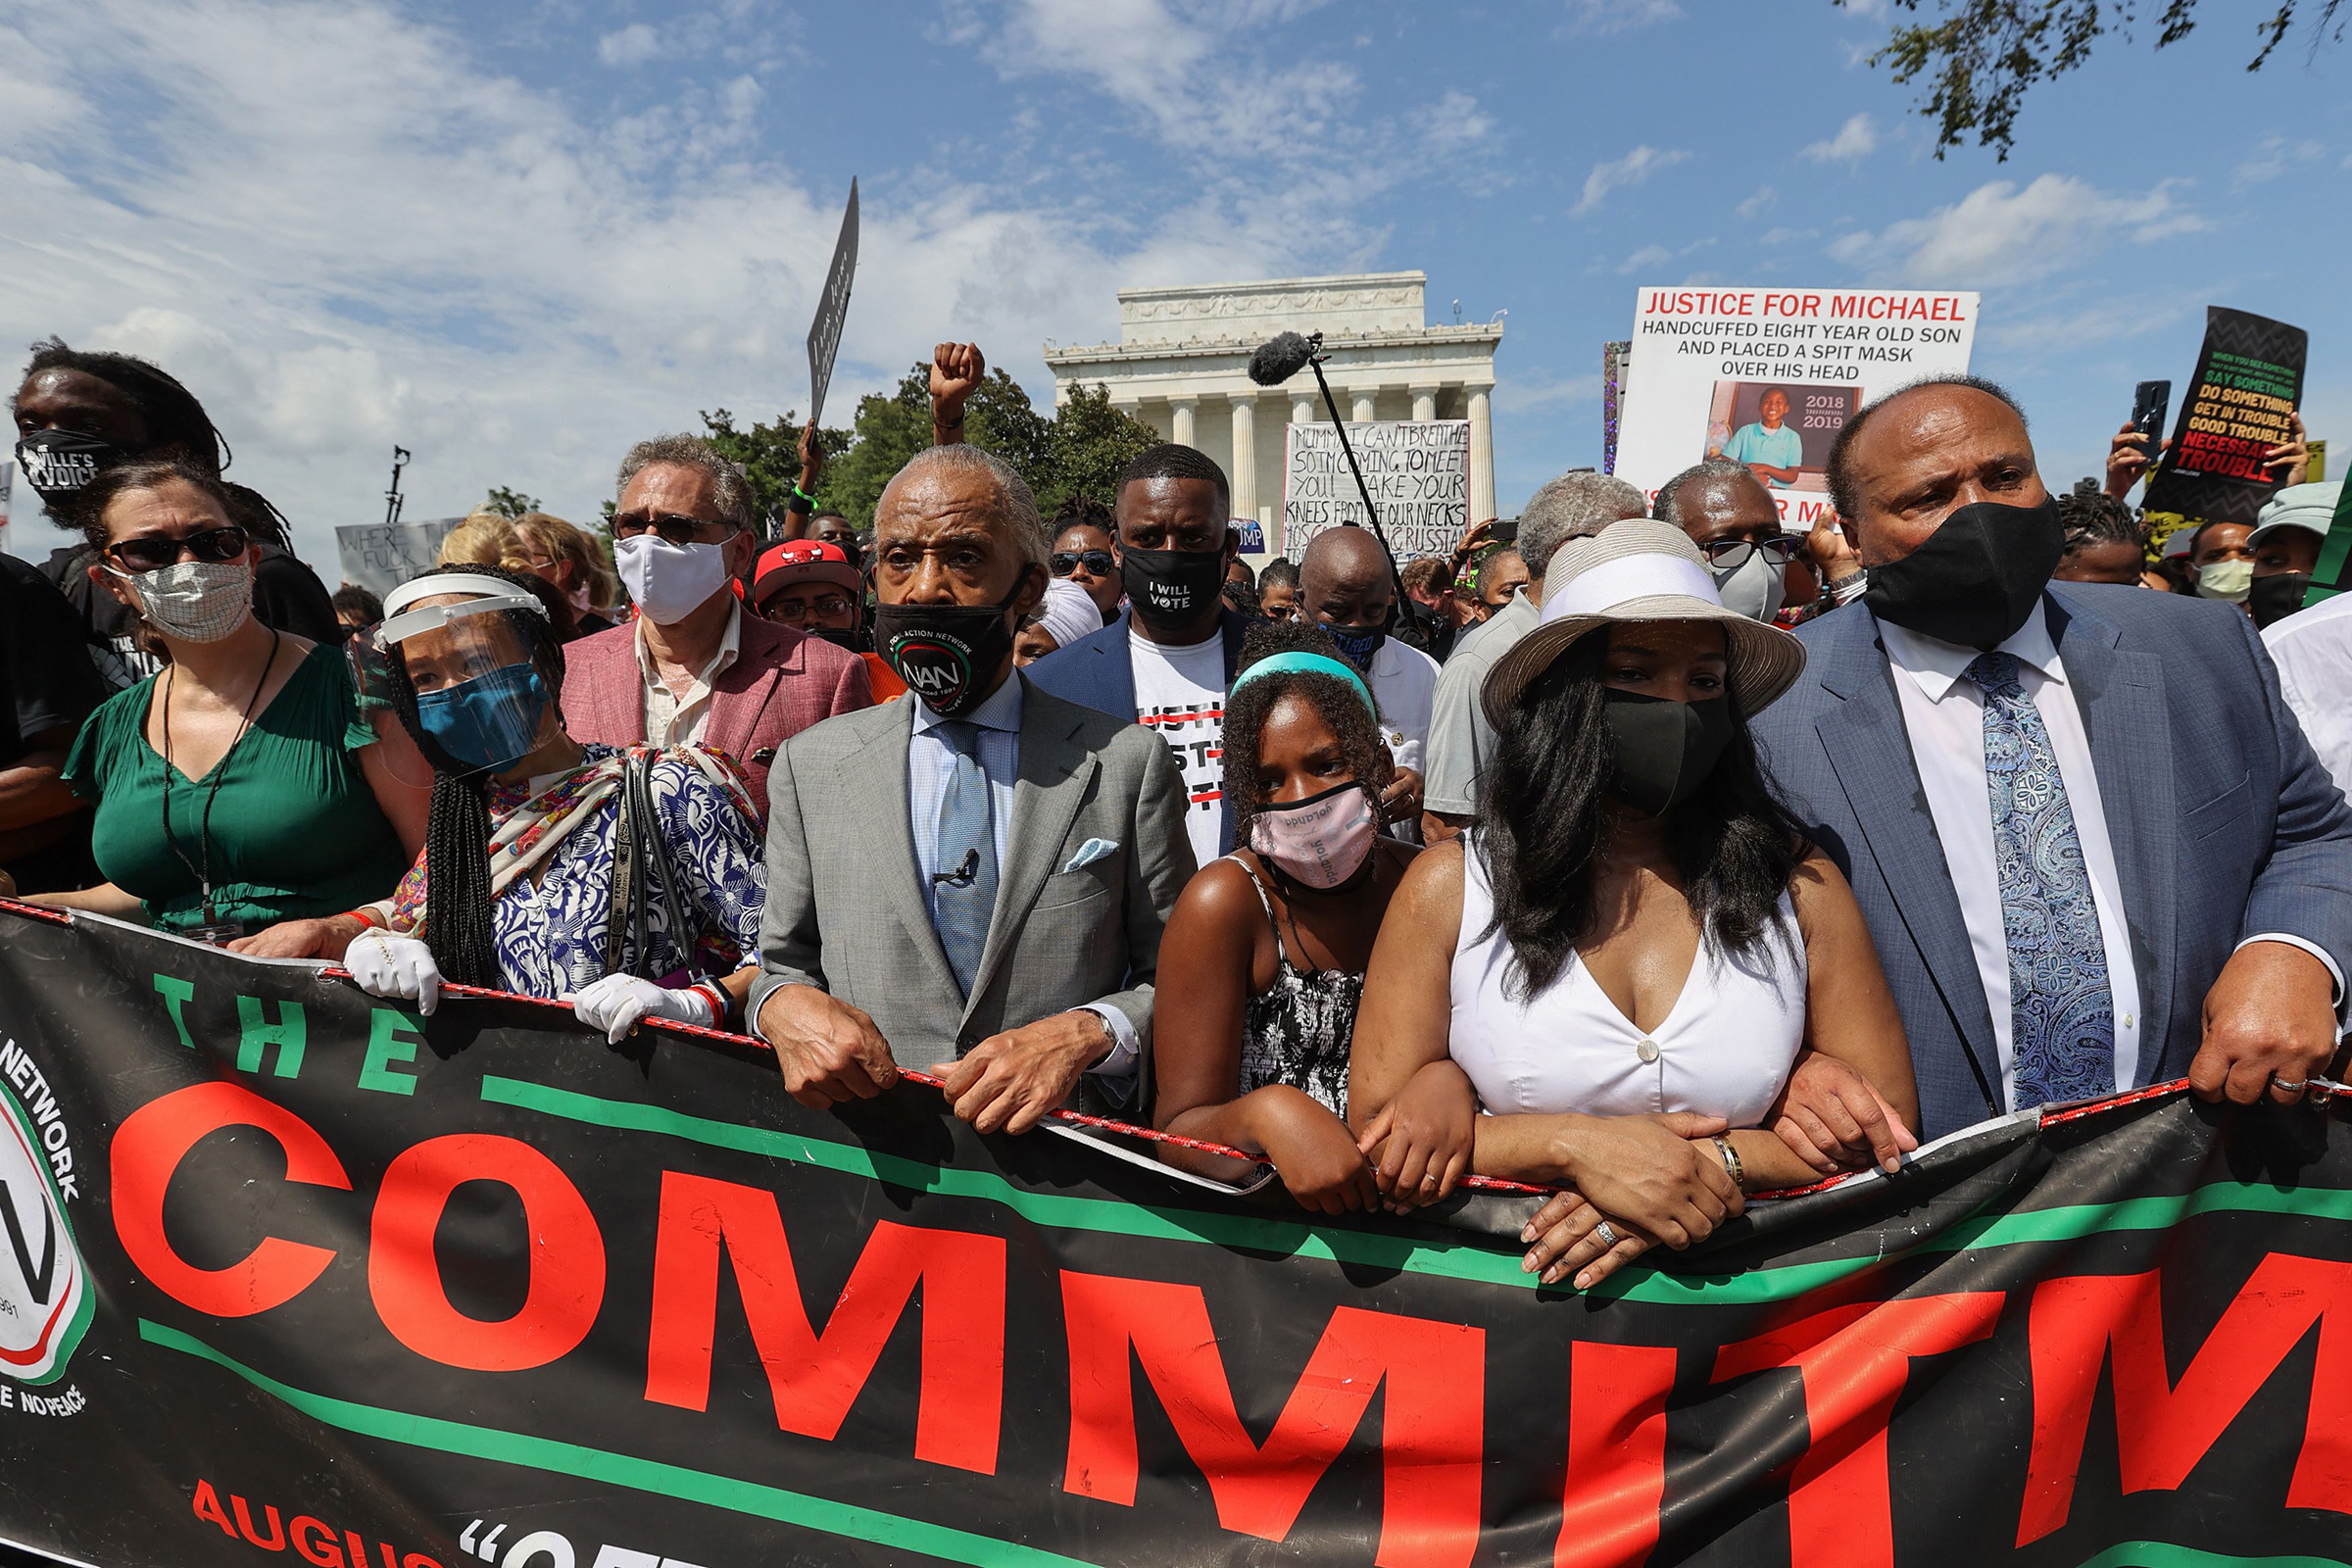 Rev. Al Sharpton, center, marches next to Yolanda King, Andrea Waters King and Martin Luther King, III during the  Commitment March: Get Your Knee Off Our Necks  protest against racism and police brutality, in Washington, D.C., on Aug. 28, 2020.